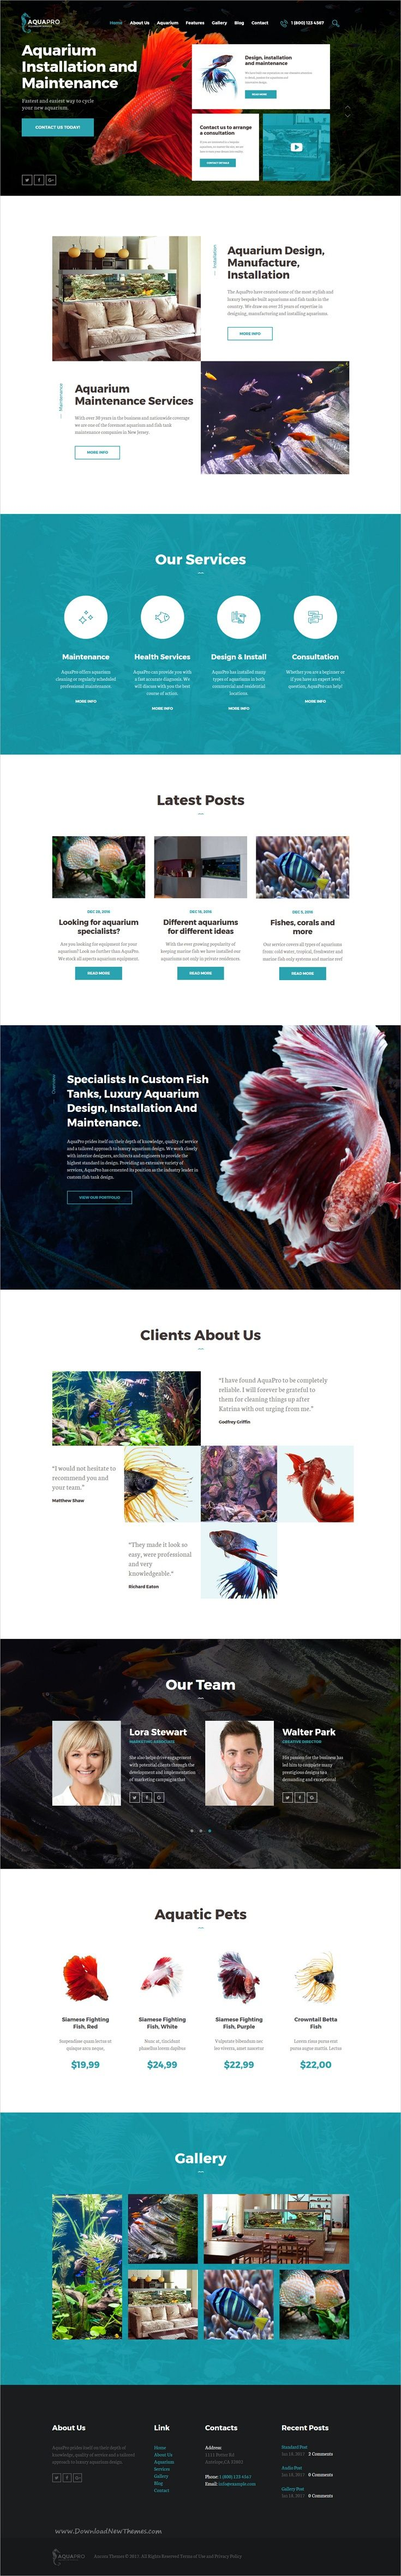 AquaPro is modern and functional design responsive #WordPress theme for #Aquarium services and business online #store eCommerce website download now➩ https://themeforest.net/item/aquapro-aquarium-services-online-store/19811882?ref=Datasata